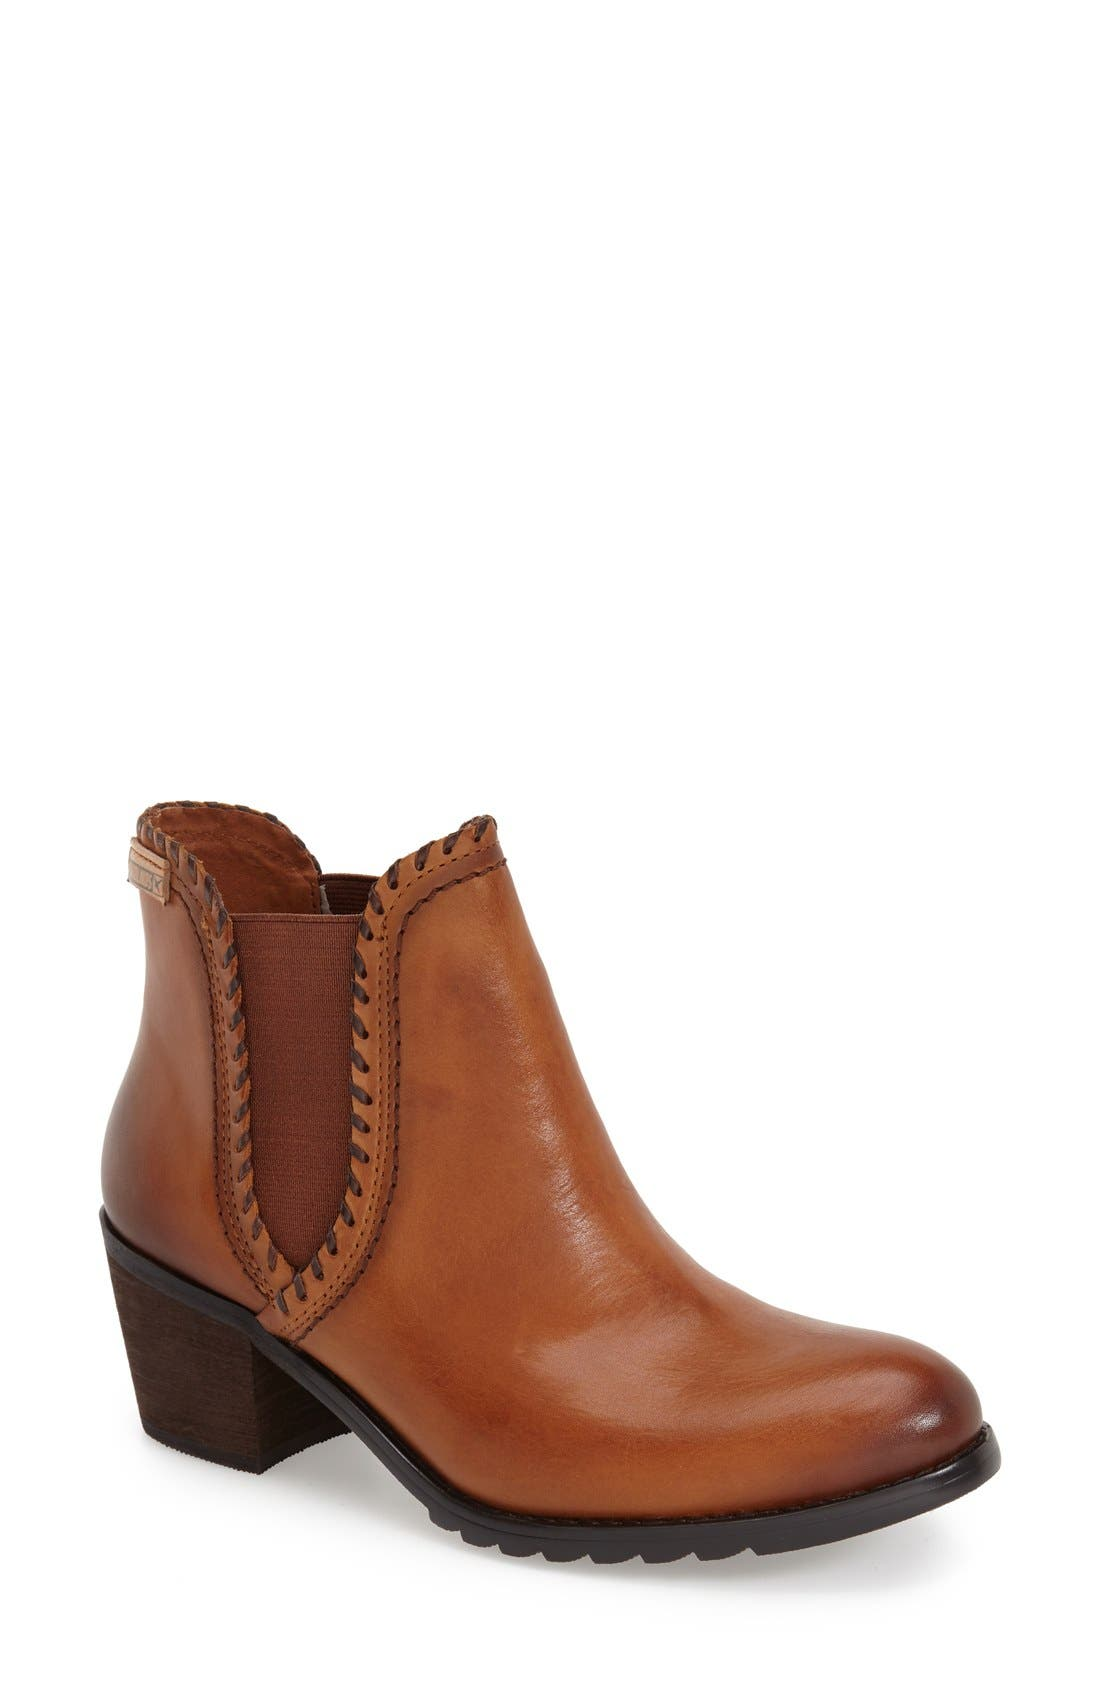 'Andorra' Water Resistant Bootie,                             Main thumbnail 1, color,                             200